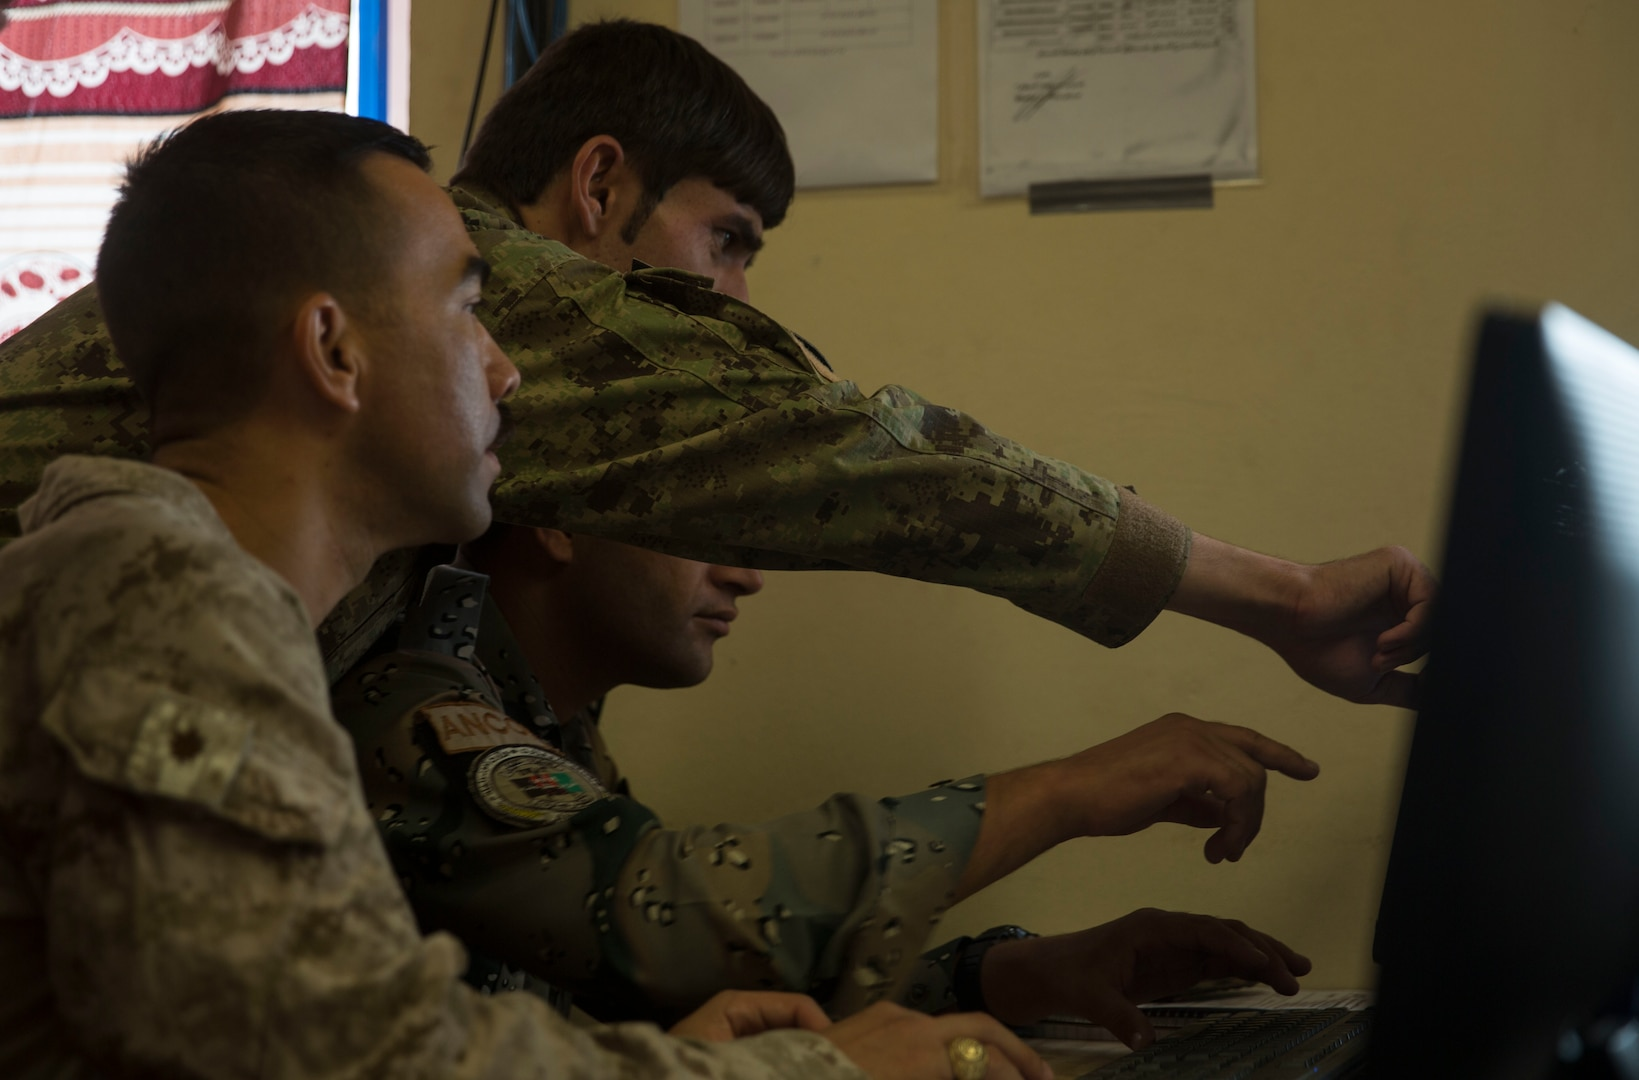 A U.S. Marine advisor with Task Force Southwest and Afghan National Defense and Security Force policemen work through an issue at the Operational Coordination Center – Regional at Bost Airfield, Afghanistan, Oct. 2, 2017. One of the primary missions of the OCC-R is to maintain situational awareness with operational forces on the ground and provide information to ground commanders so they can manage their forces and resources effectively. (U.S. Marine Corps photo by Sgt. Justin T. Updegraff)